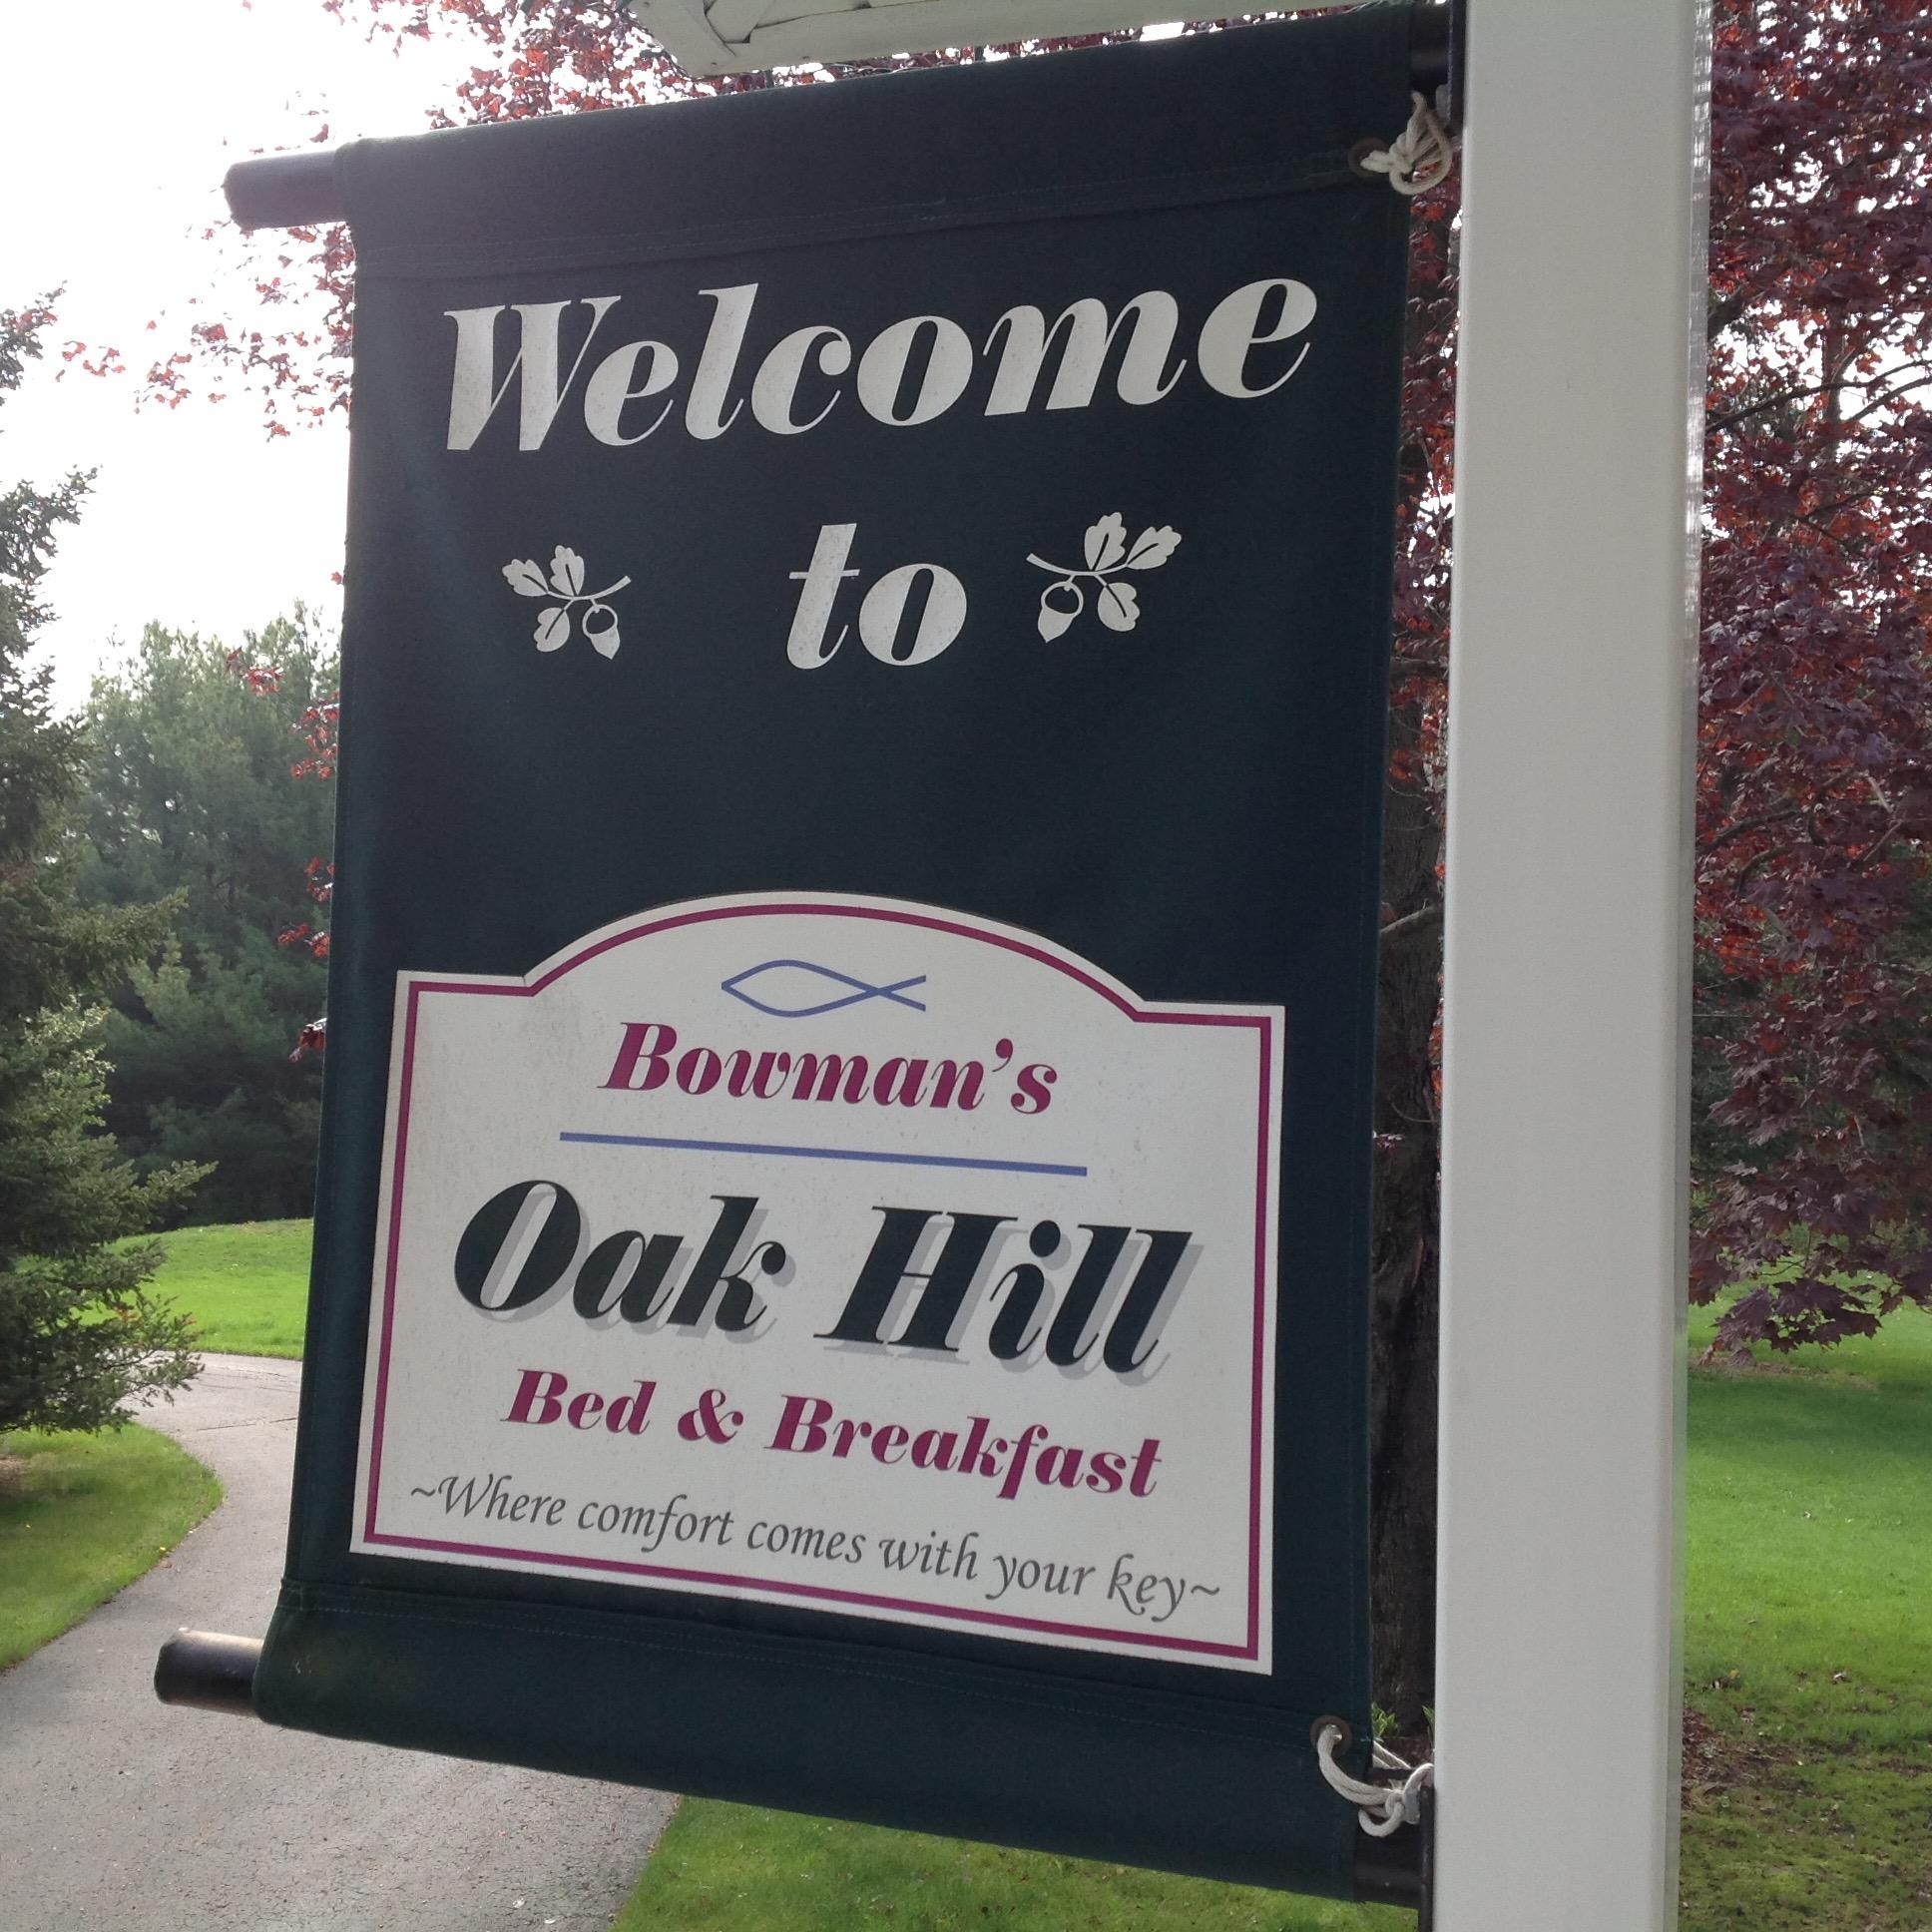 Bowman's Oak Hill Bed and Breakfast image 5